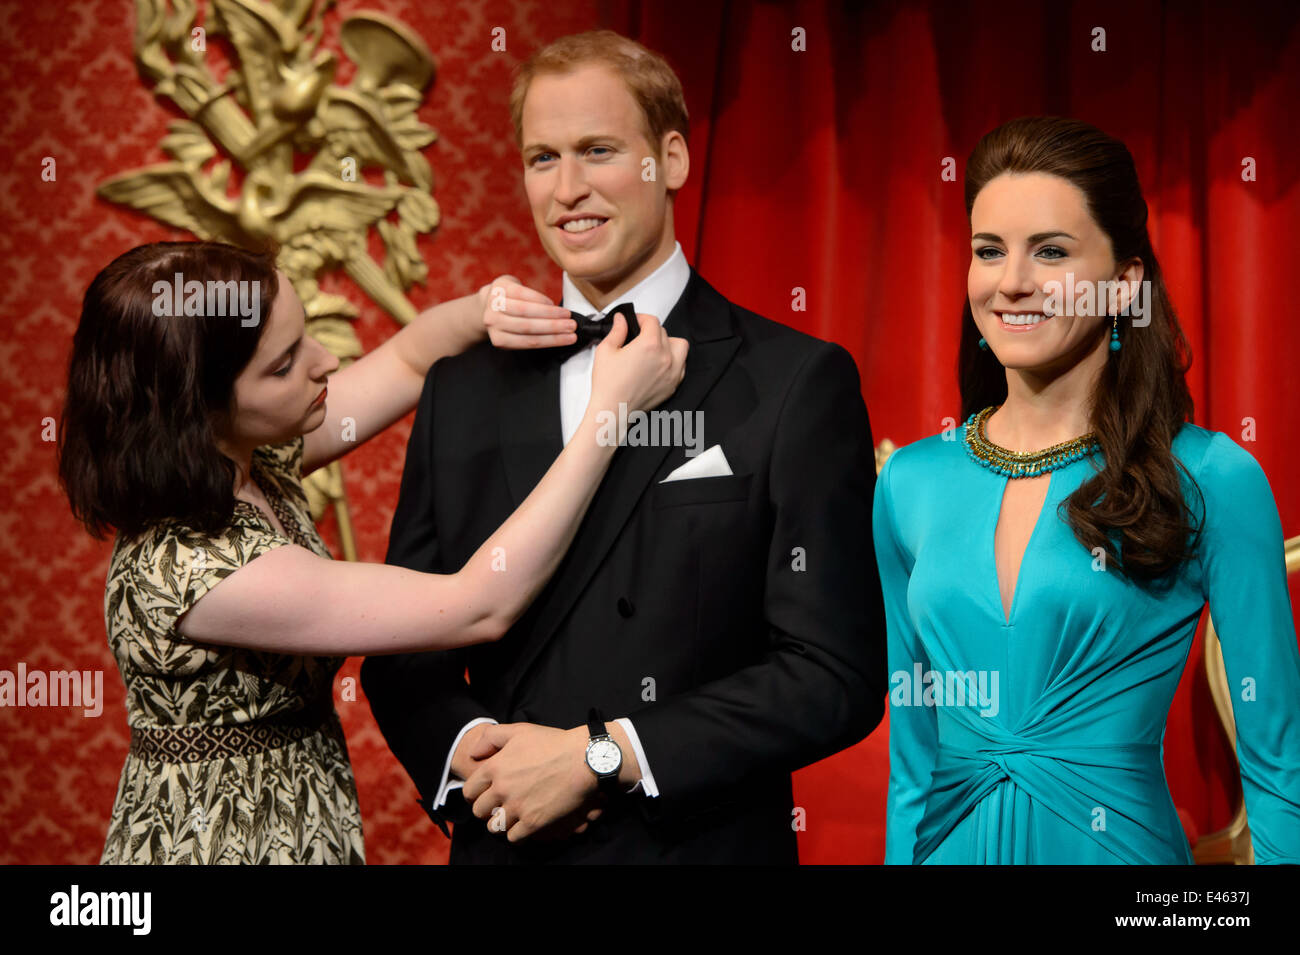 The wax figures of William, Duke of Cambridge and Kate, Duchess of Cambridge are unveild at Madame Tussauds London. - Stock Image